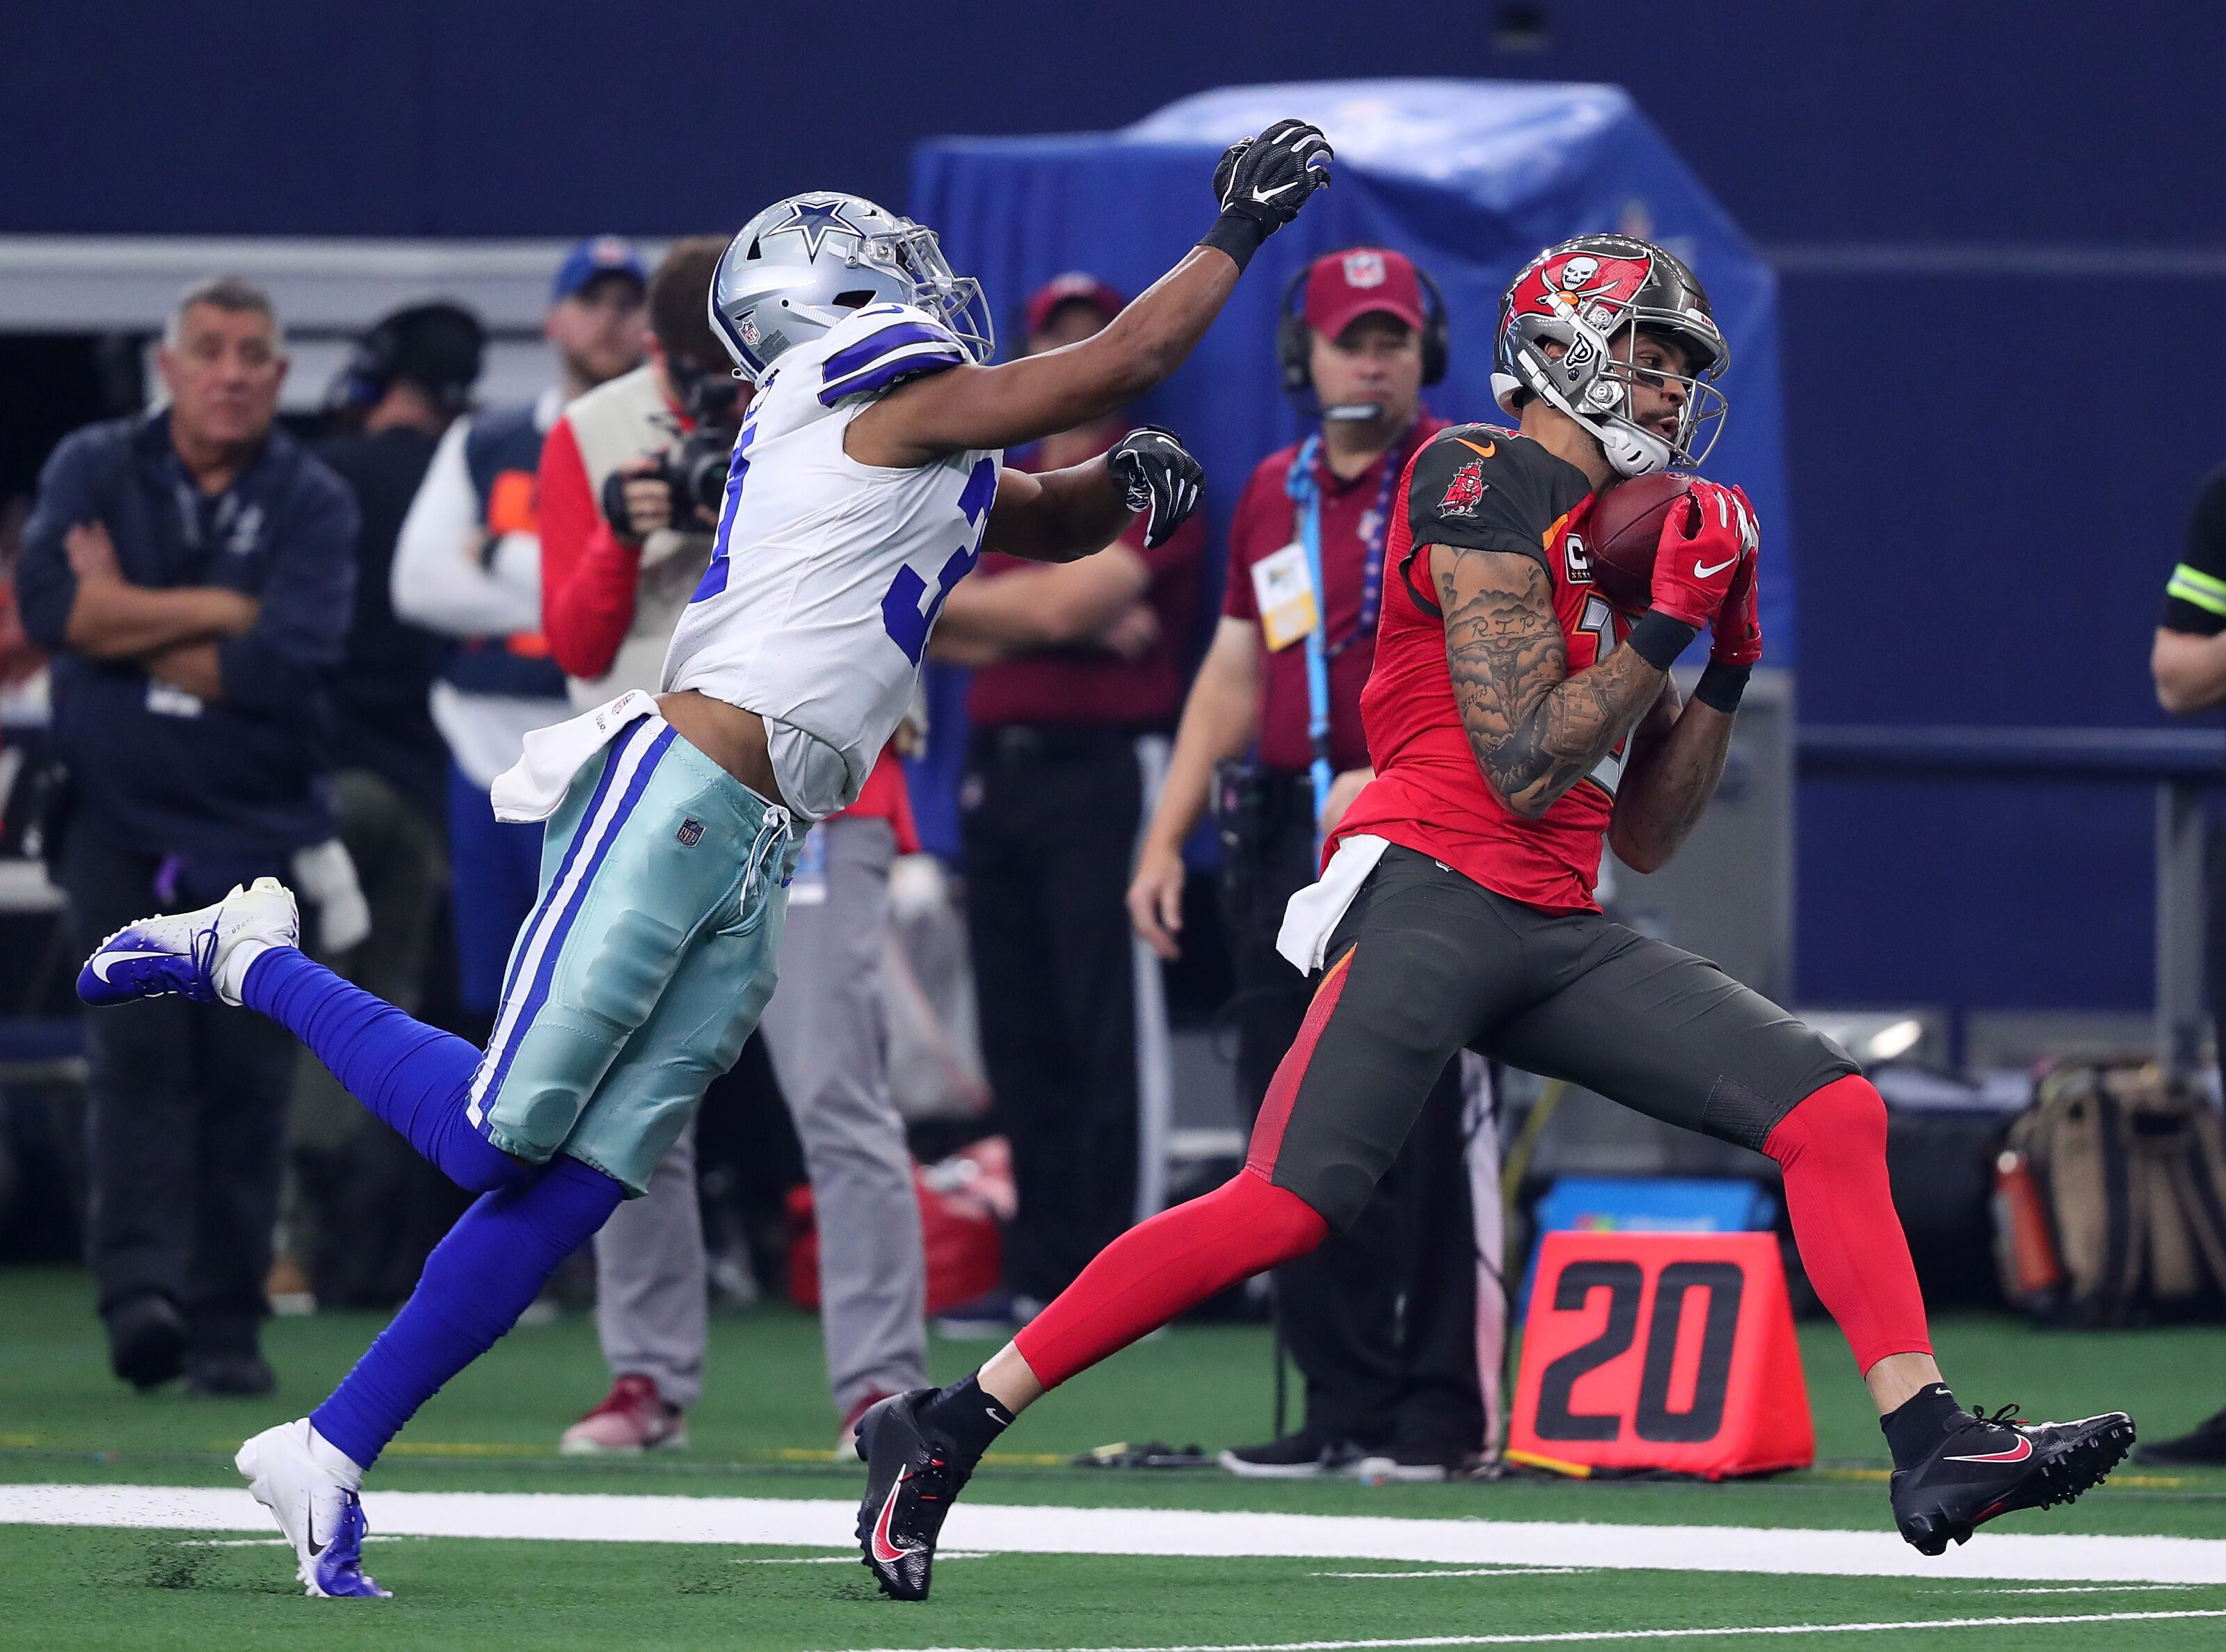 Tampa Bay Buccaneers: Expect Mike Evans to continue excellence